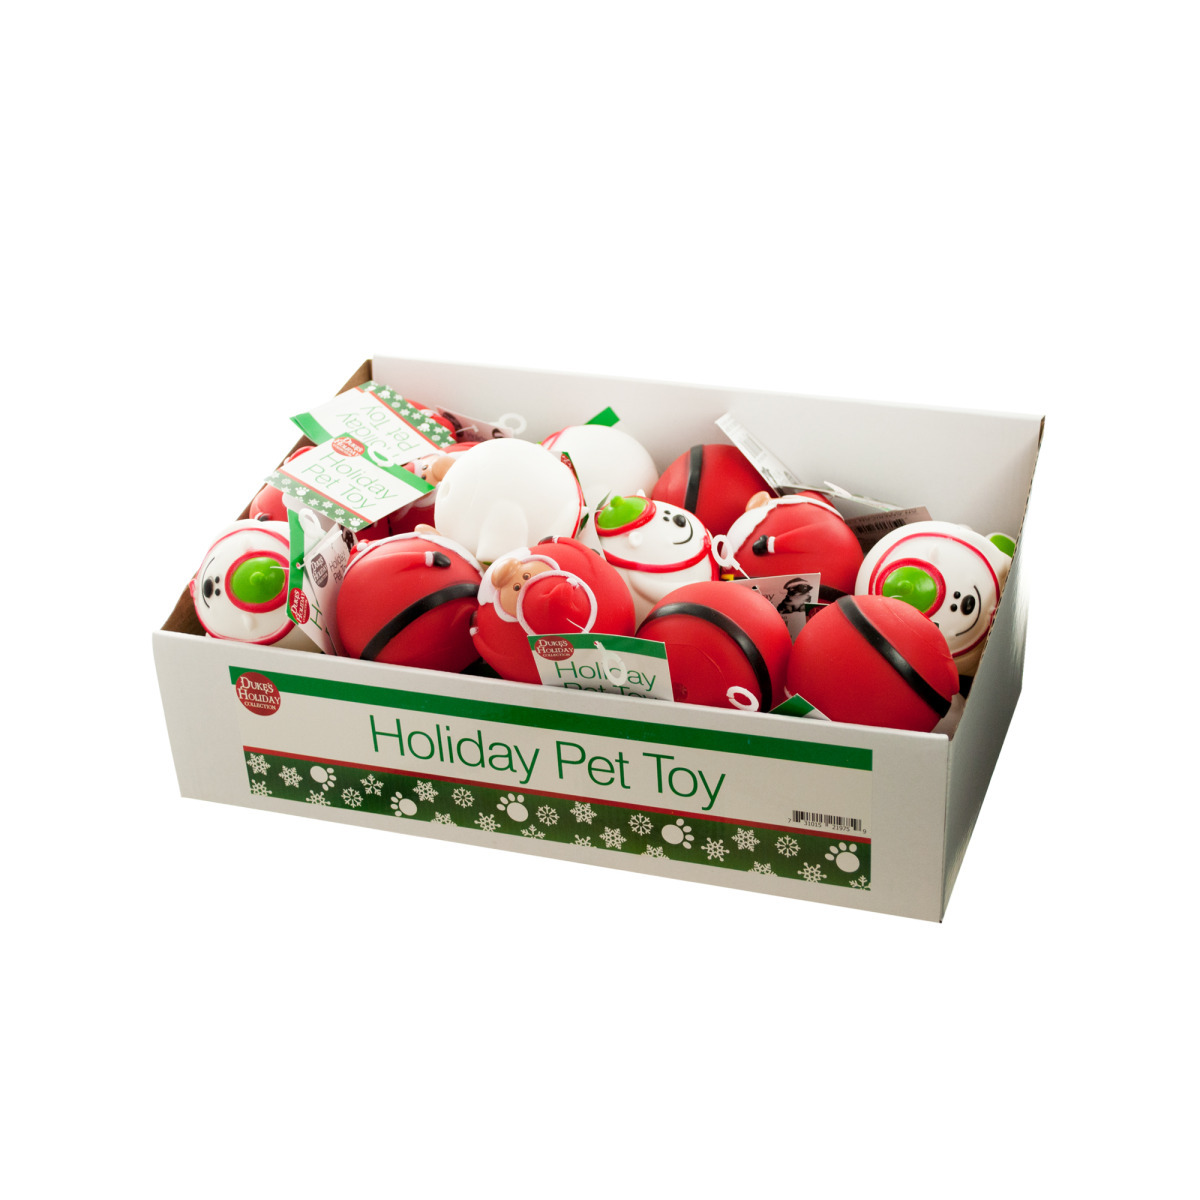 Holiday Squeaky Dog Ball TOYS - 36 Count (1943762)